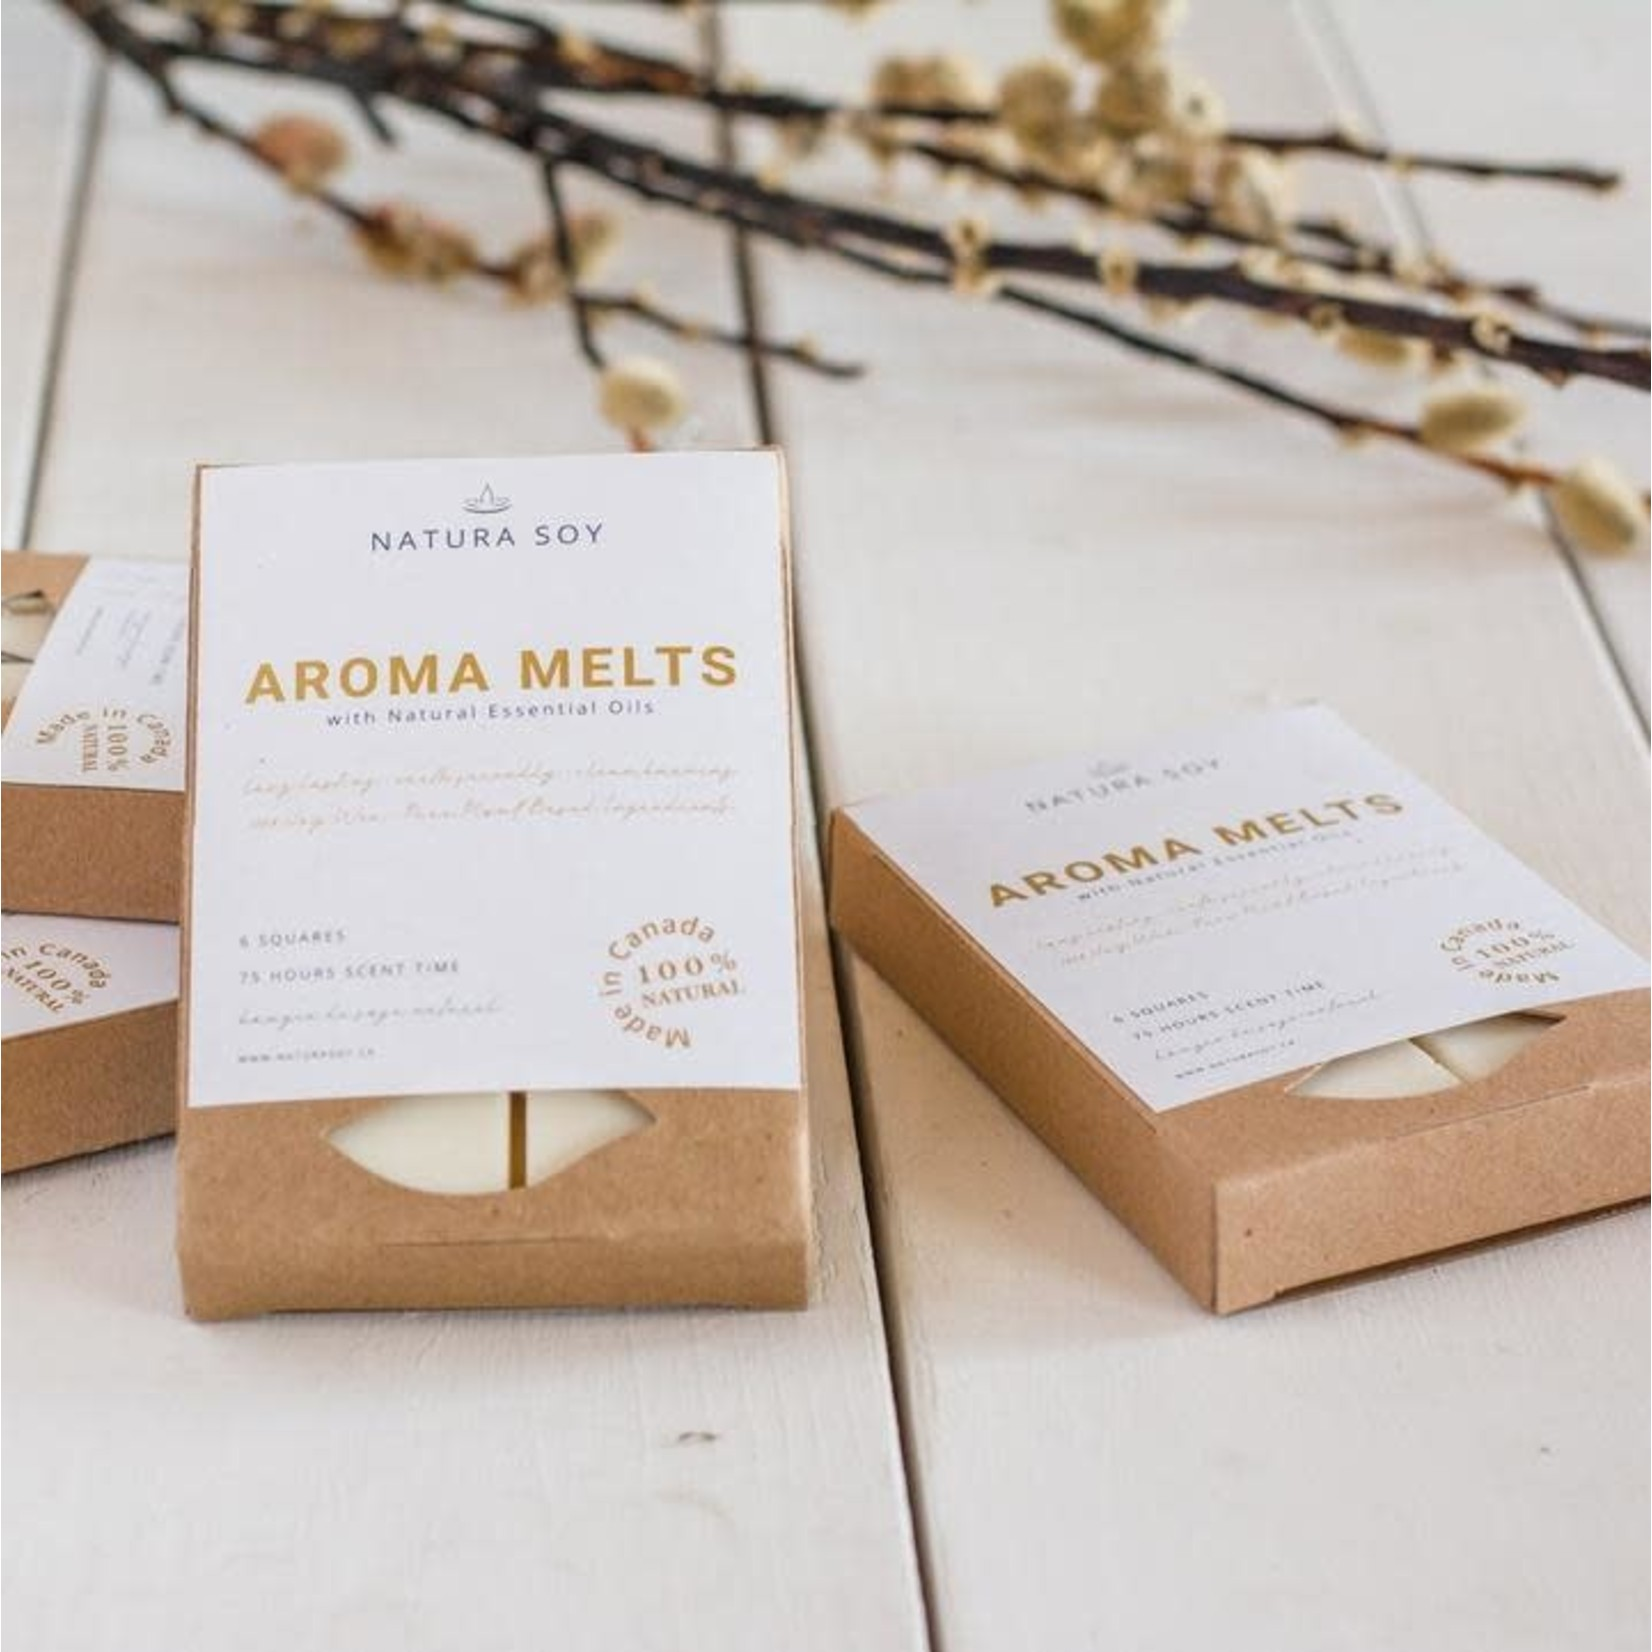 NATURA SOY Aroma Melts Spiced Plum